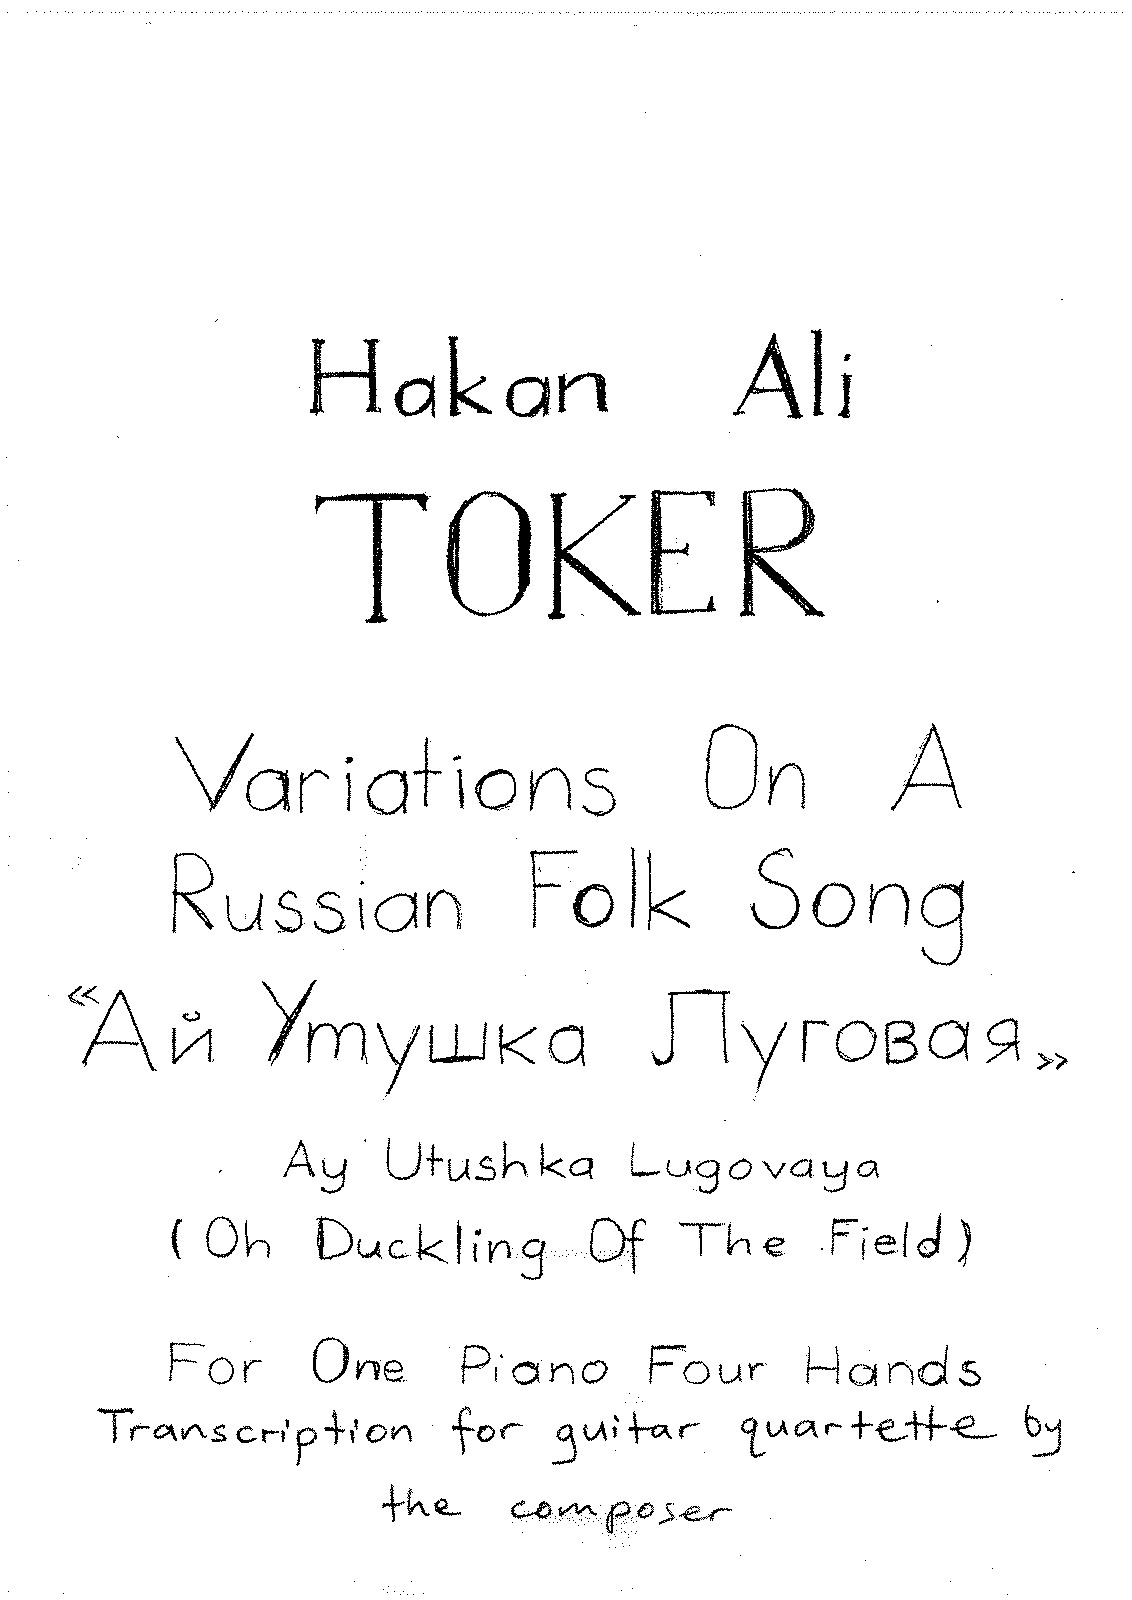 PMLP578484-Variations on a Russian Folk Song (Guitar Quartet Version) by Hakan A. Toker.pdf